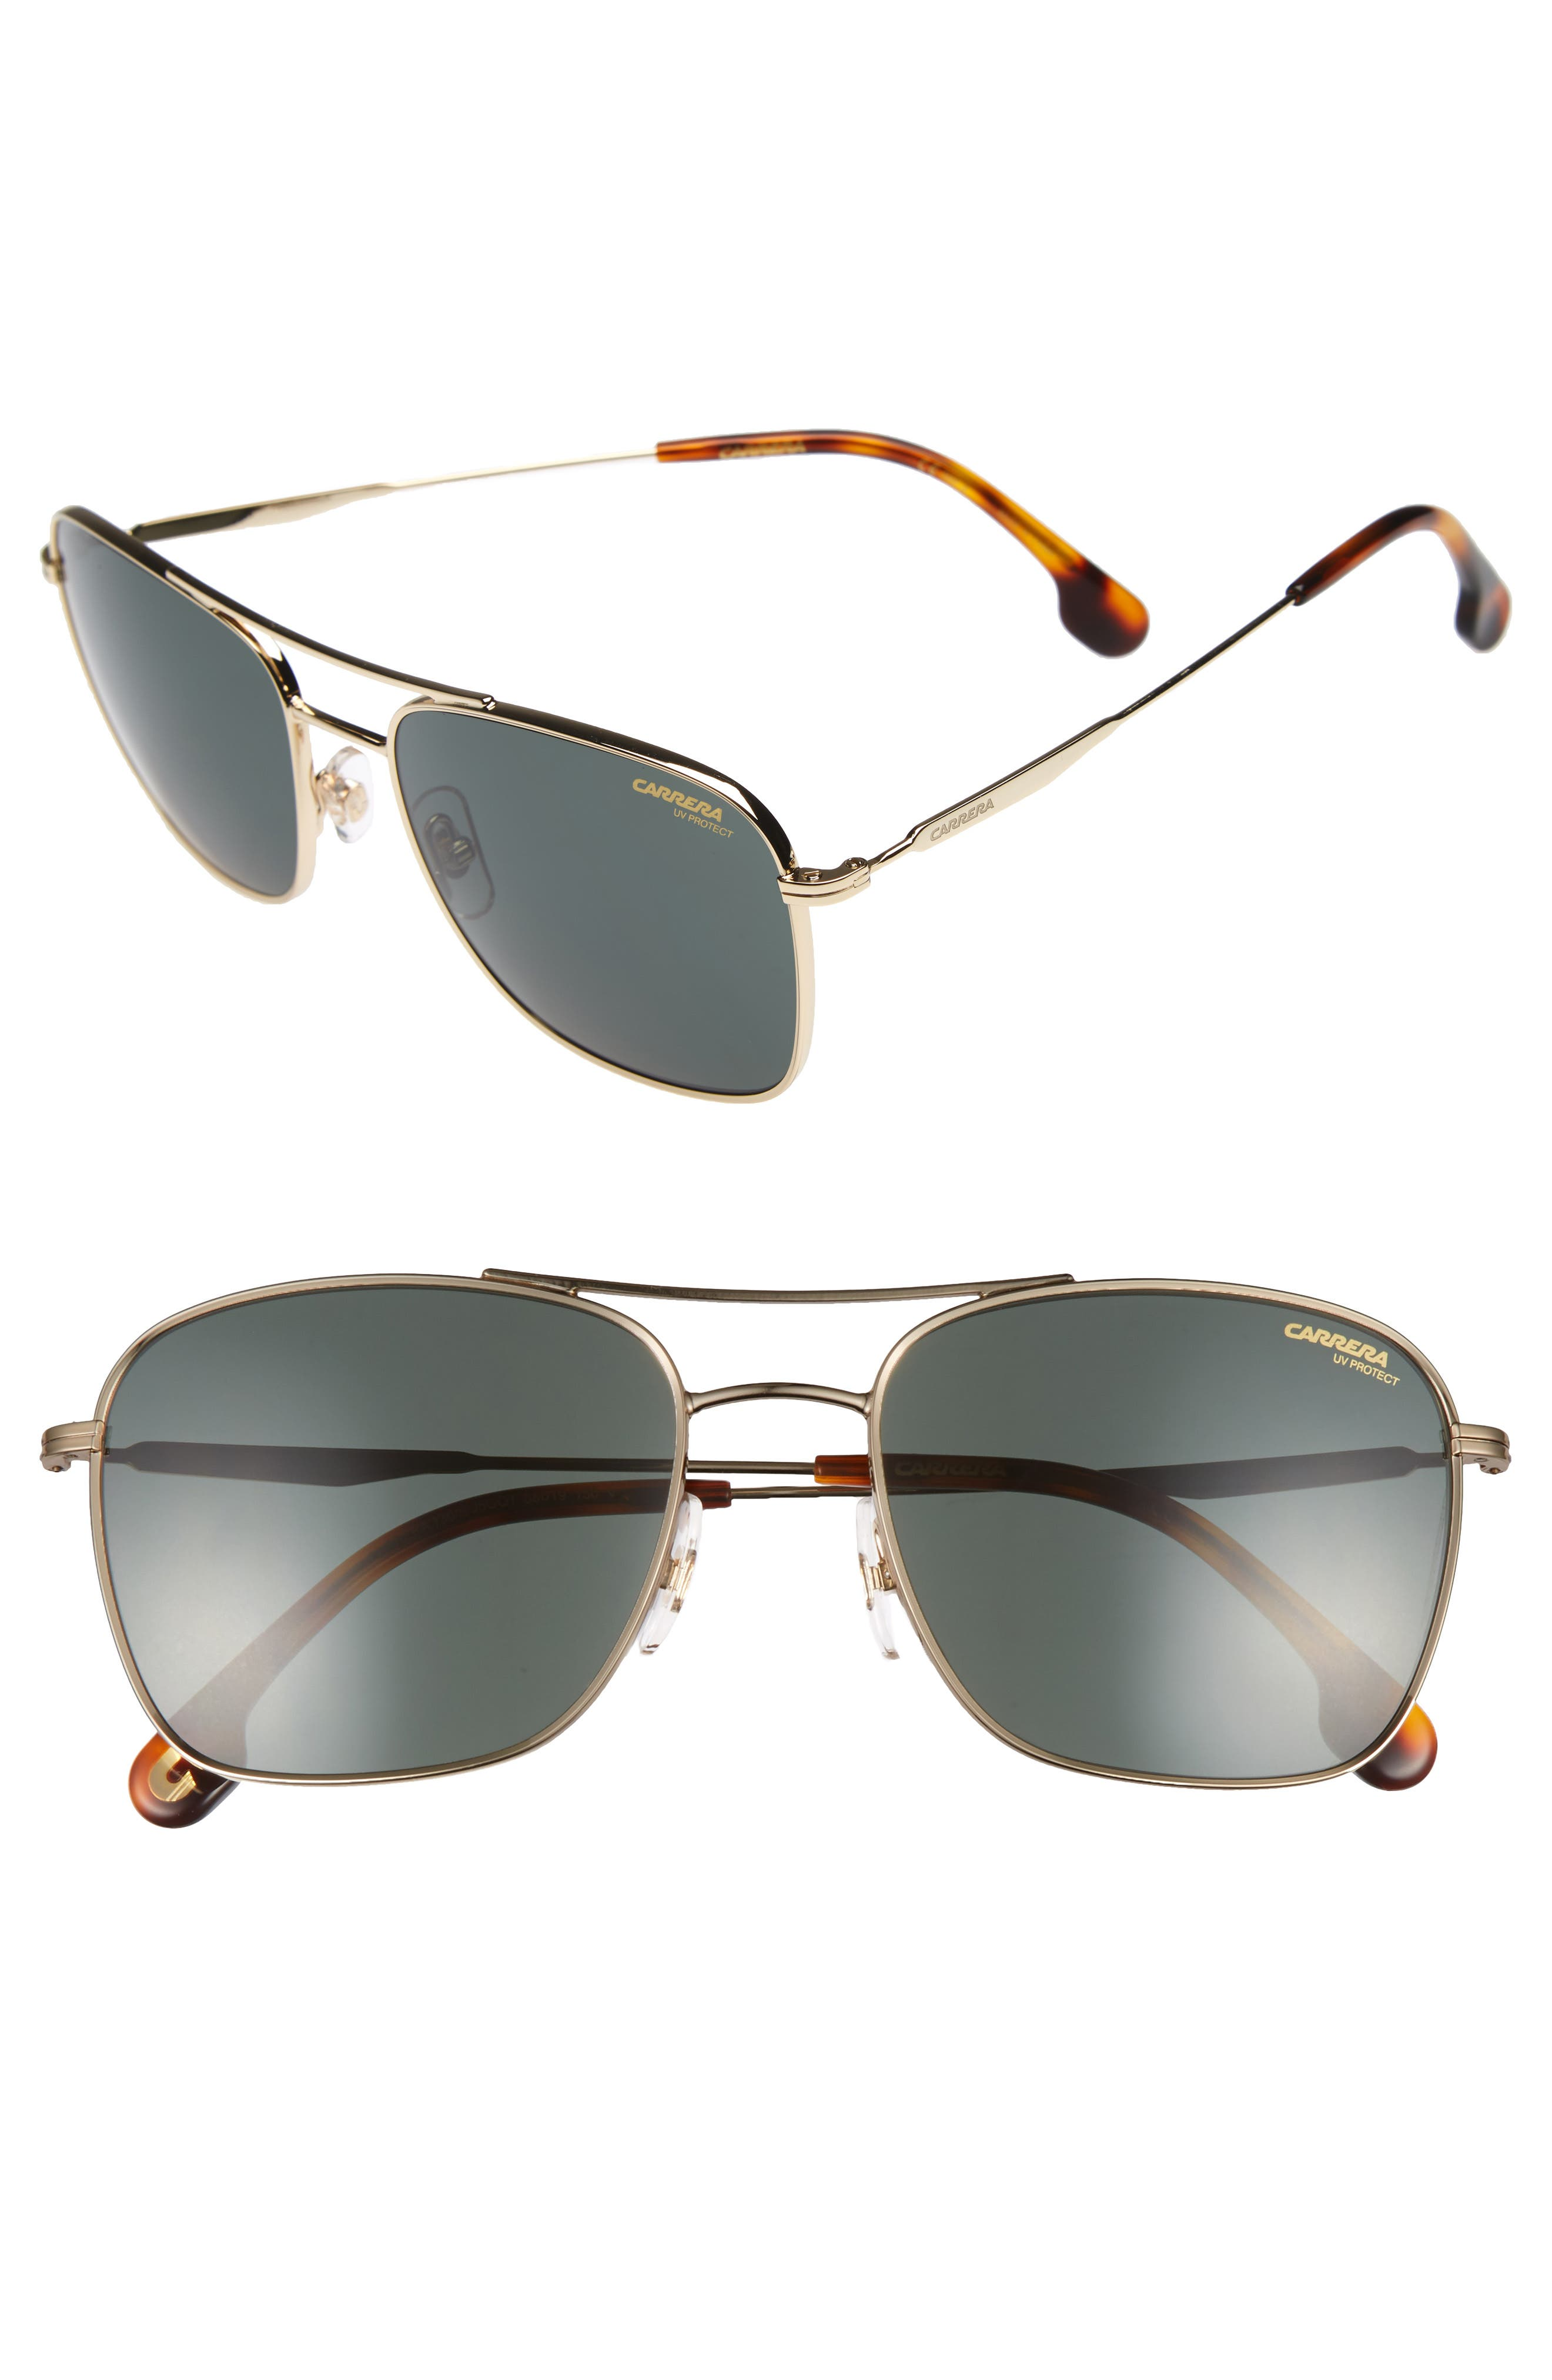 58mm Navigator Sunglasses,                         Main,                         color, Gold